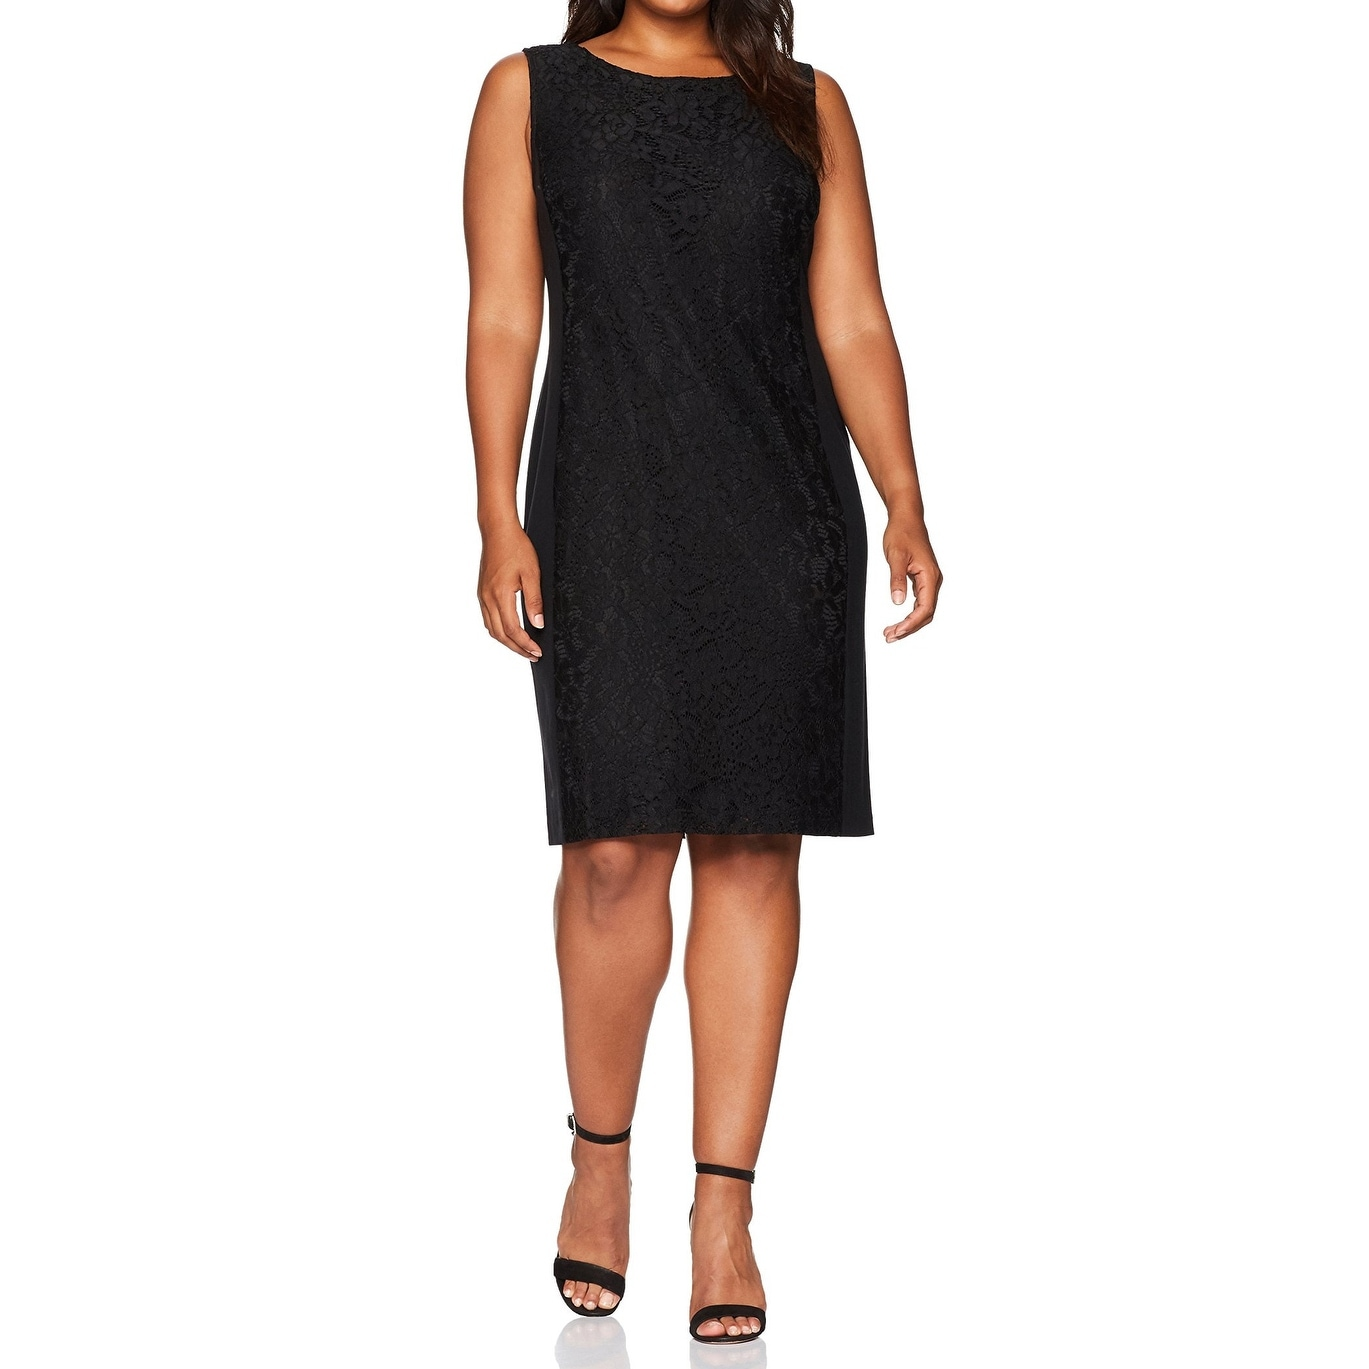 Shop Nine West Black Women s Size 24W Plus Lace Stretch Sheath Dress - Free  Shipping Today - - 27490368 7deec06d9